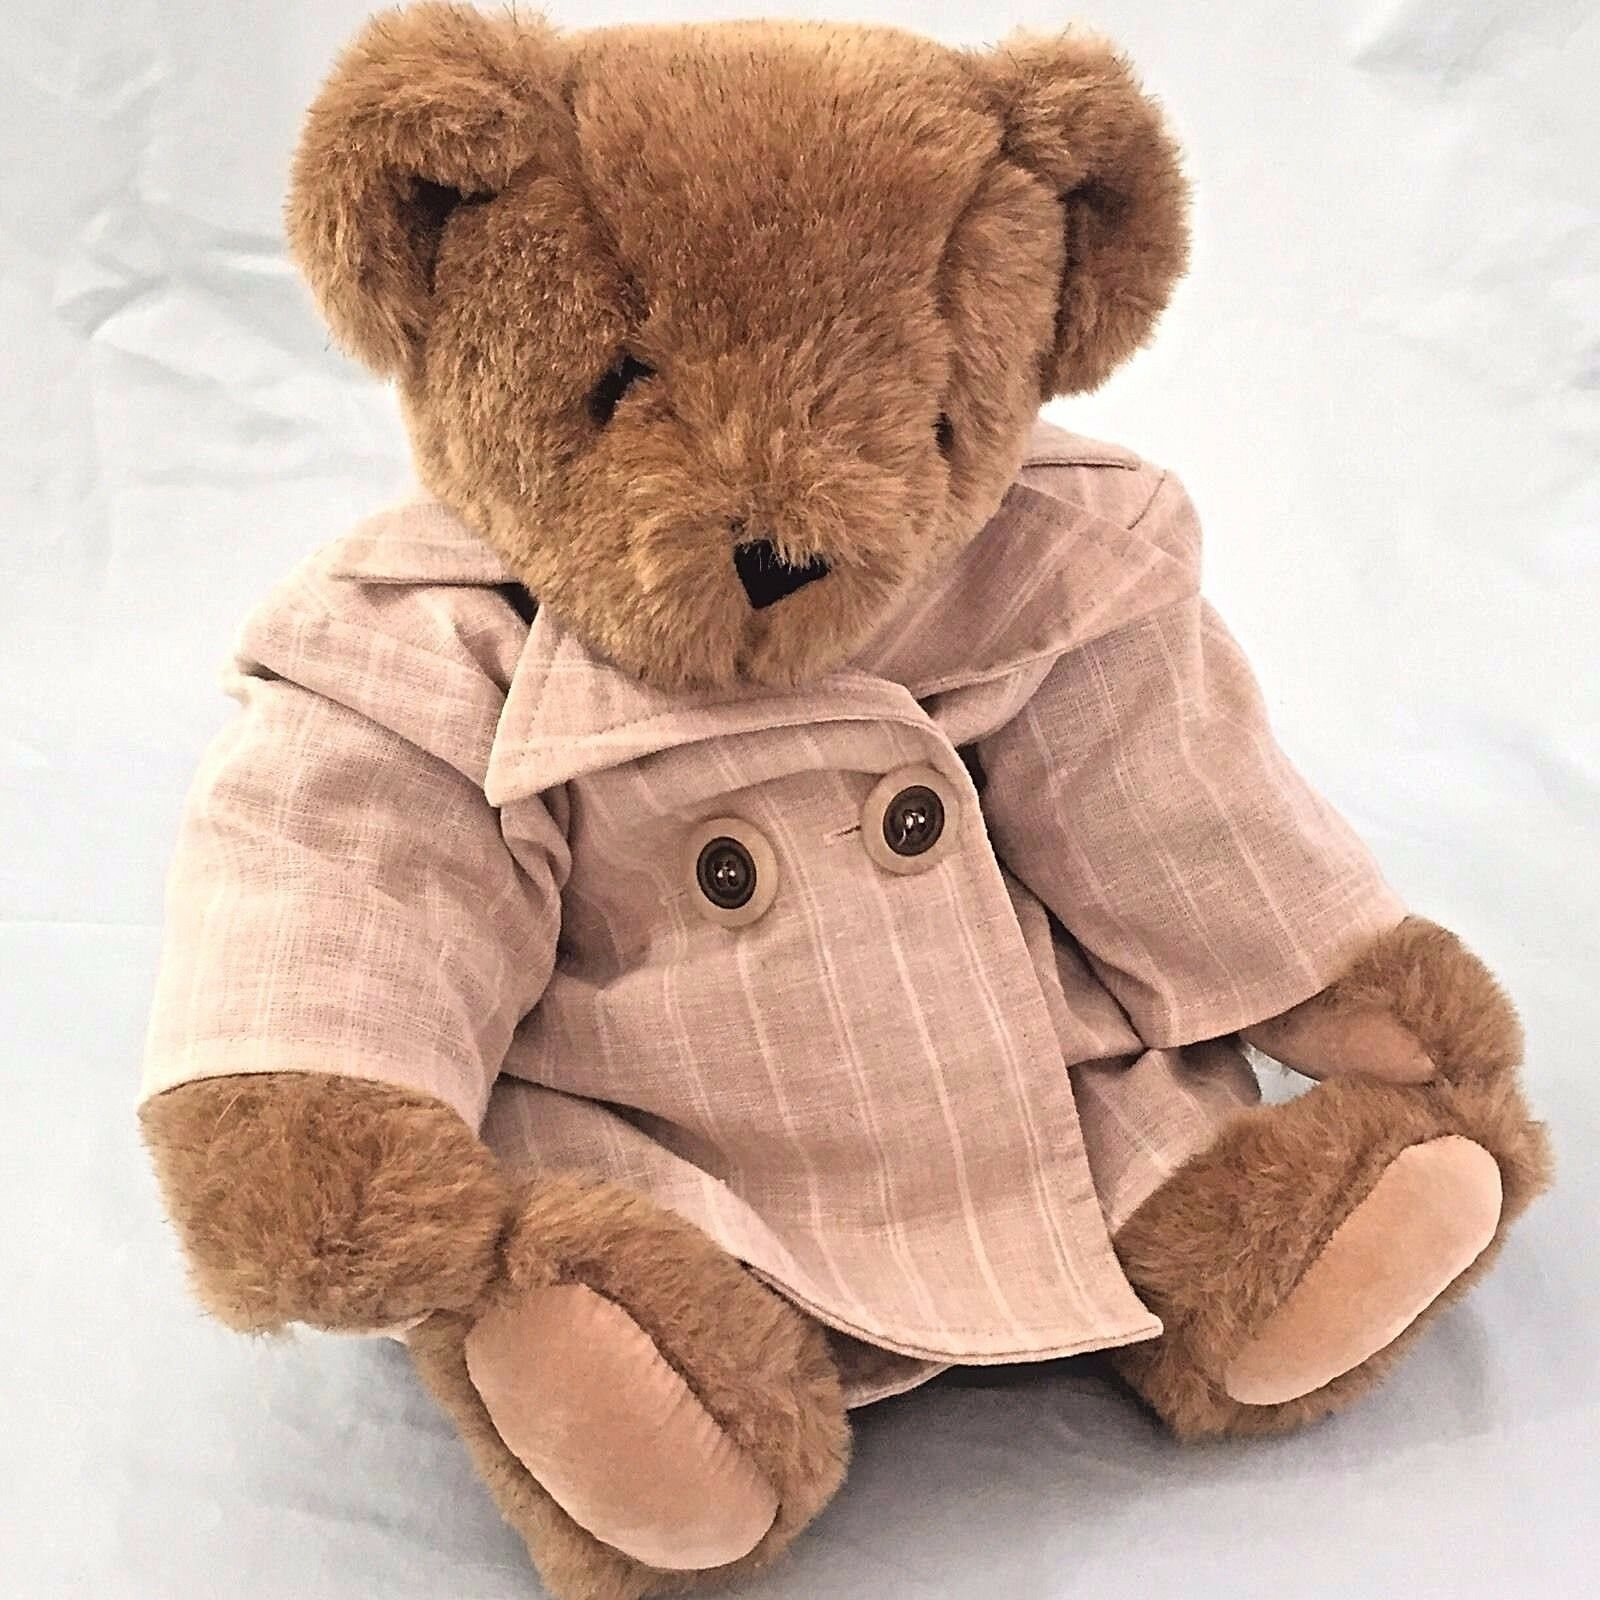 vermont teddy bear analysis This is a research report on swot analysis of vermont teddy bear company by sayed arif in mass media and communication category search and upload all types of swot analysis of vermont teddy bear company projects for mba's on managementparadisecom.